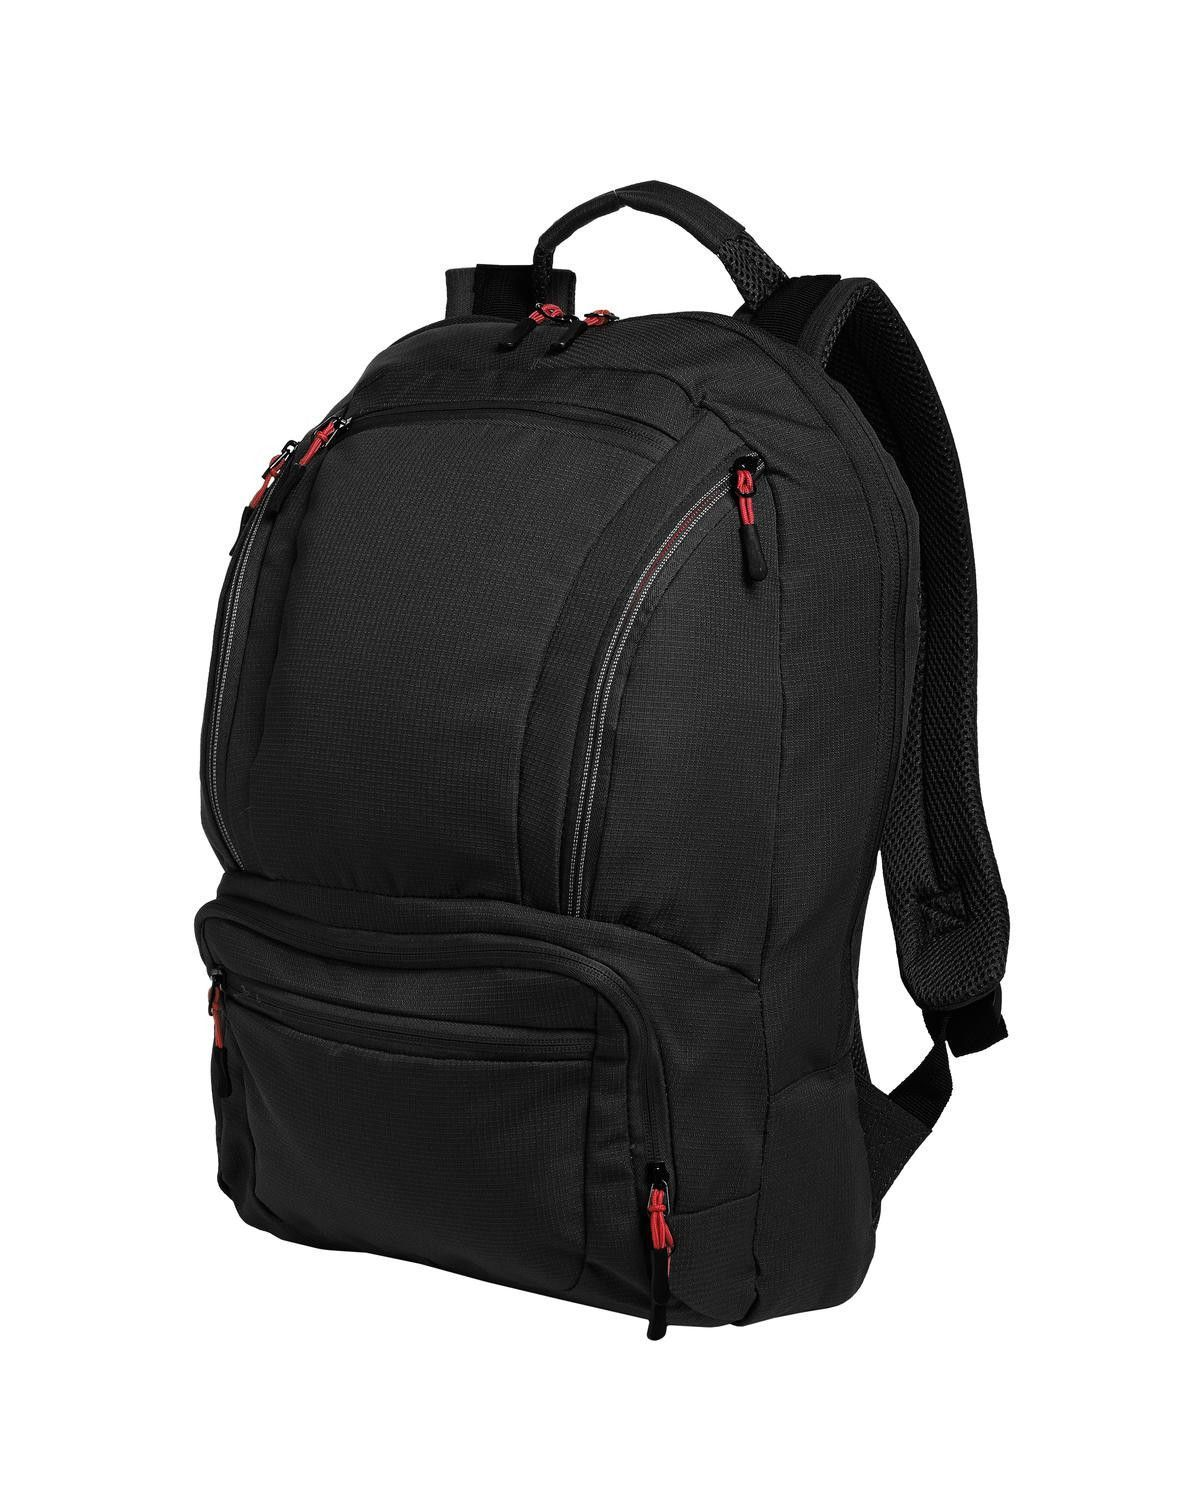 e71975d485c Port Authority Cyber Backpack. BG200 Black  Red   Stuff to Buy + ...